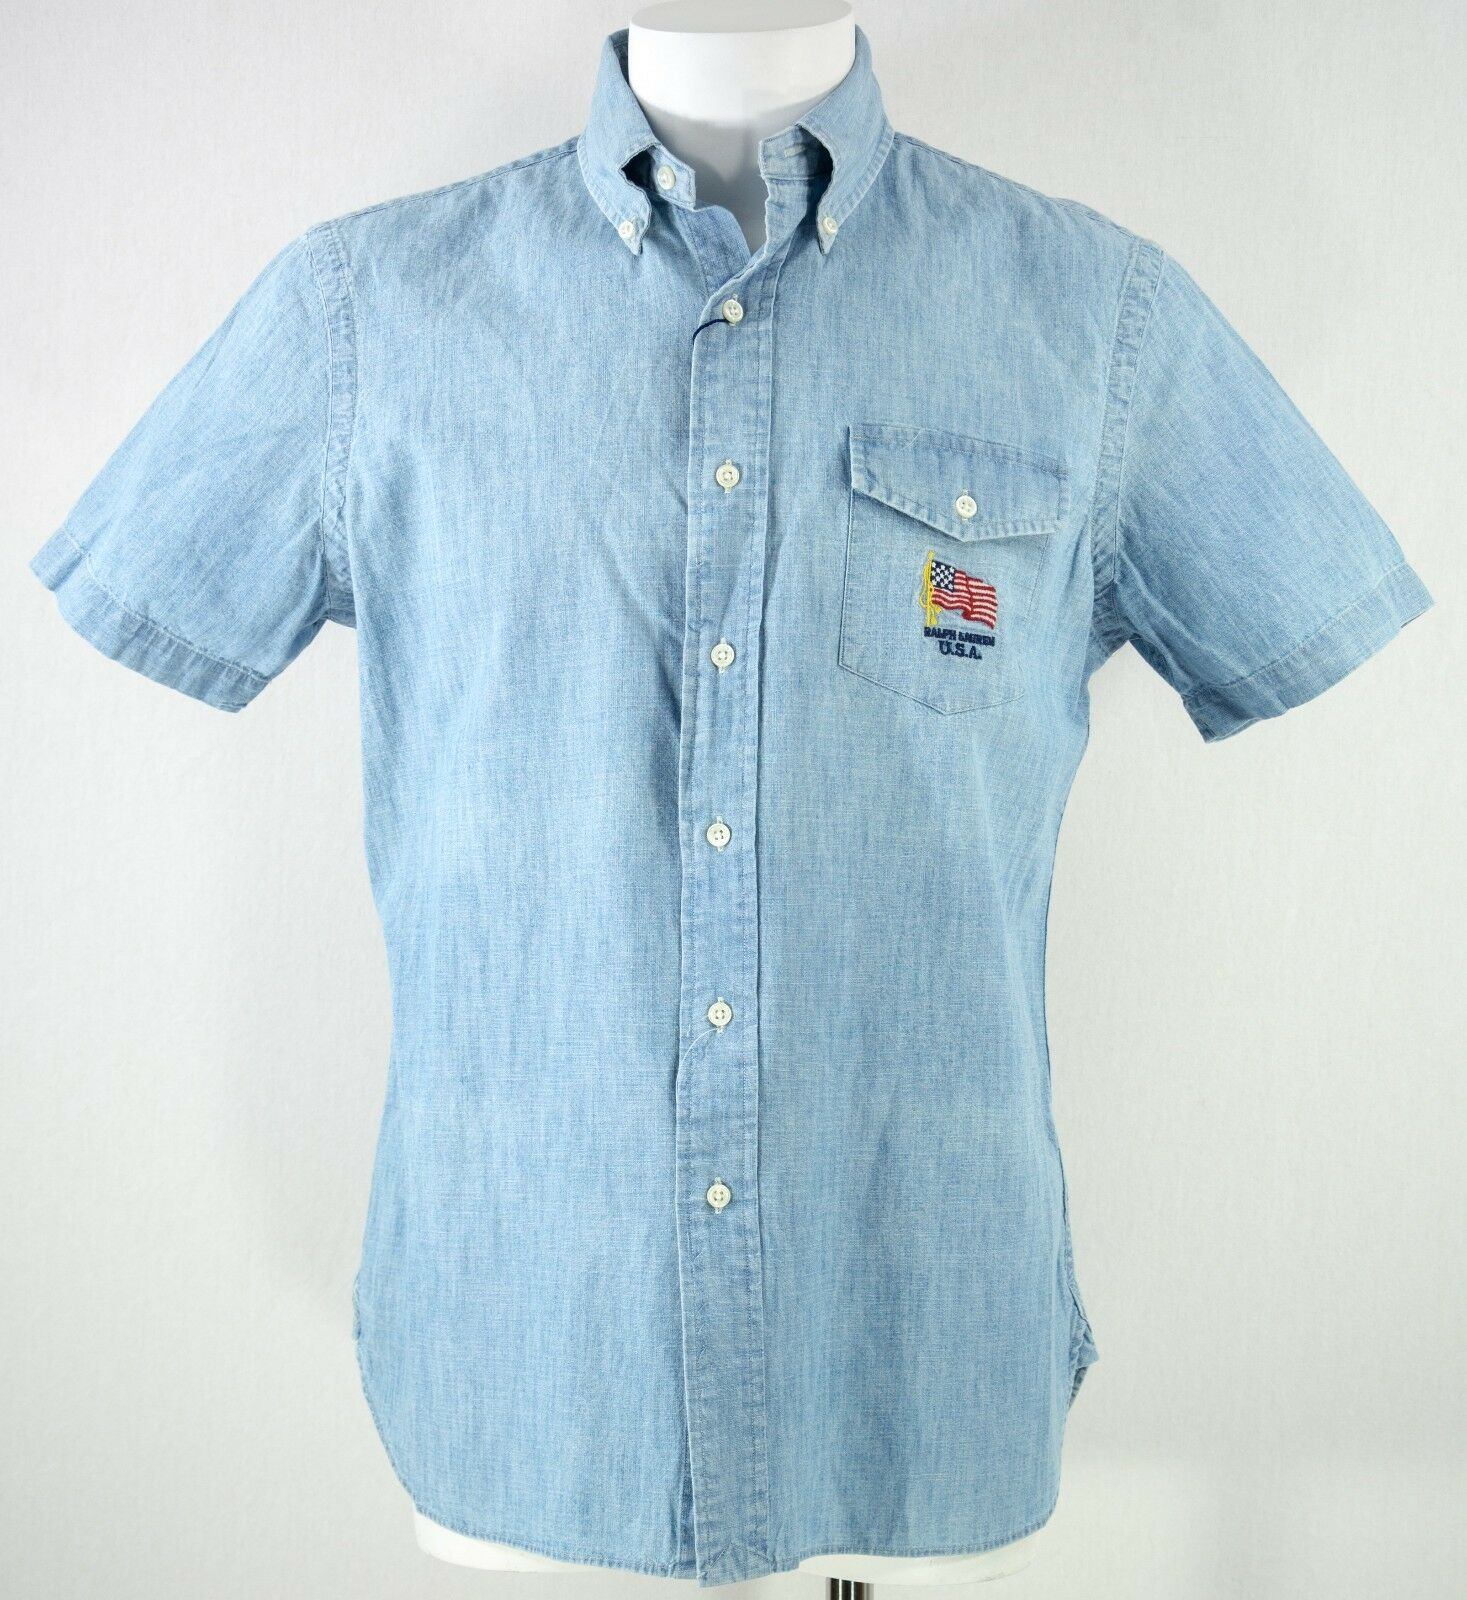 Men's Polo Ralph Lauren size MEDIUM bluee Flag Embroidered Short Sleeve Shirt NEW